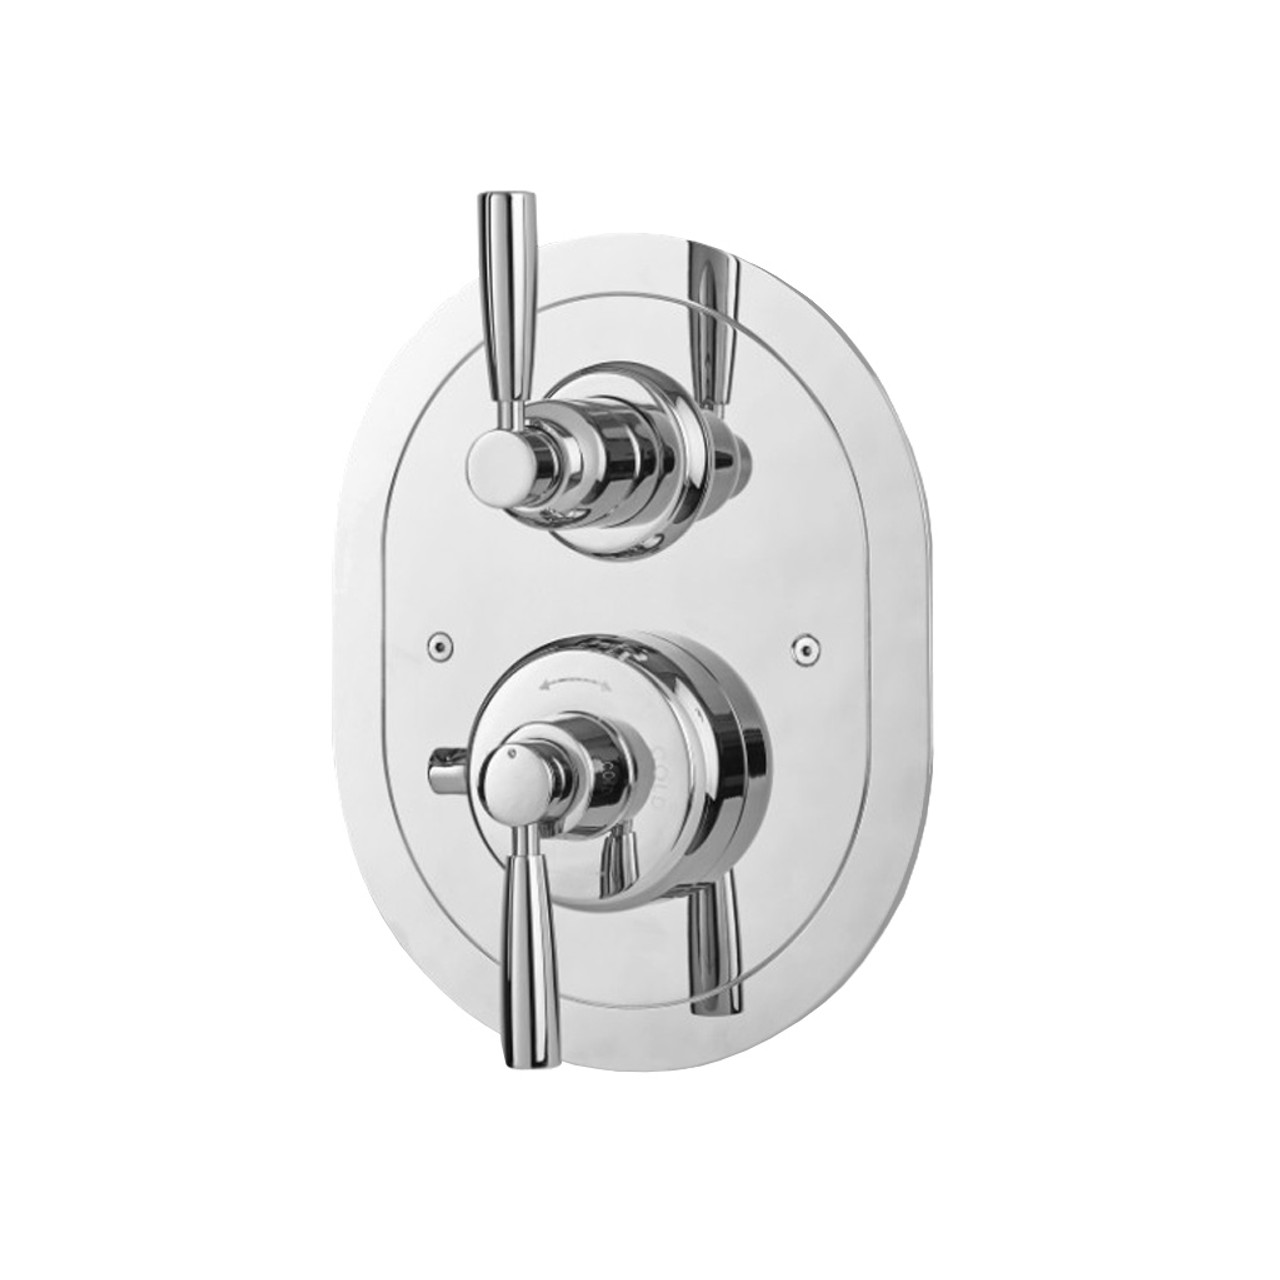 Perrin Rowe 5855 Concealed Thermostatic Shower Valve Lever